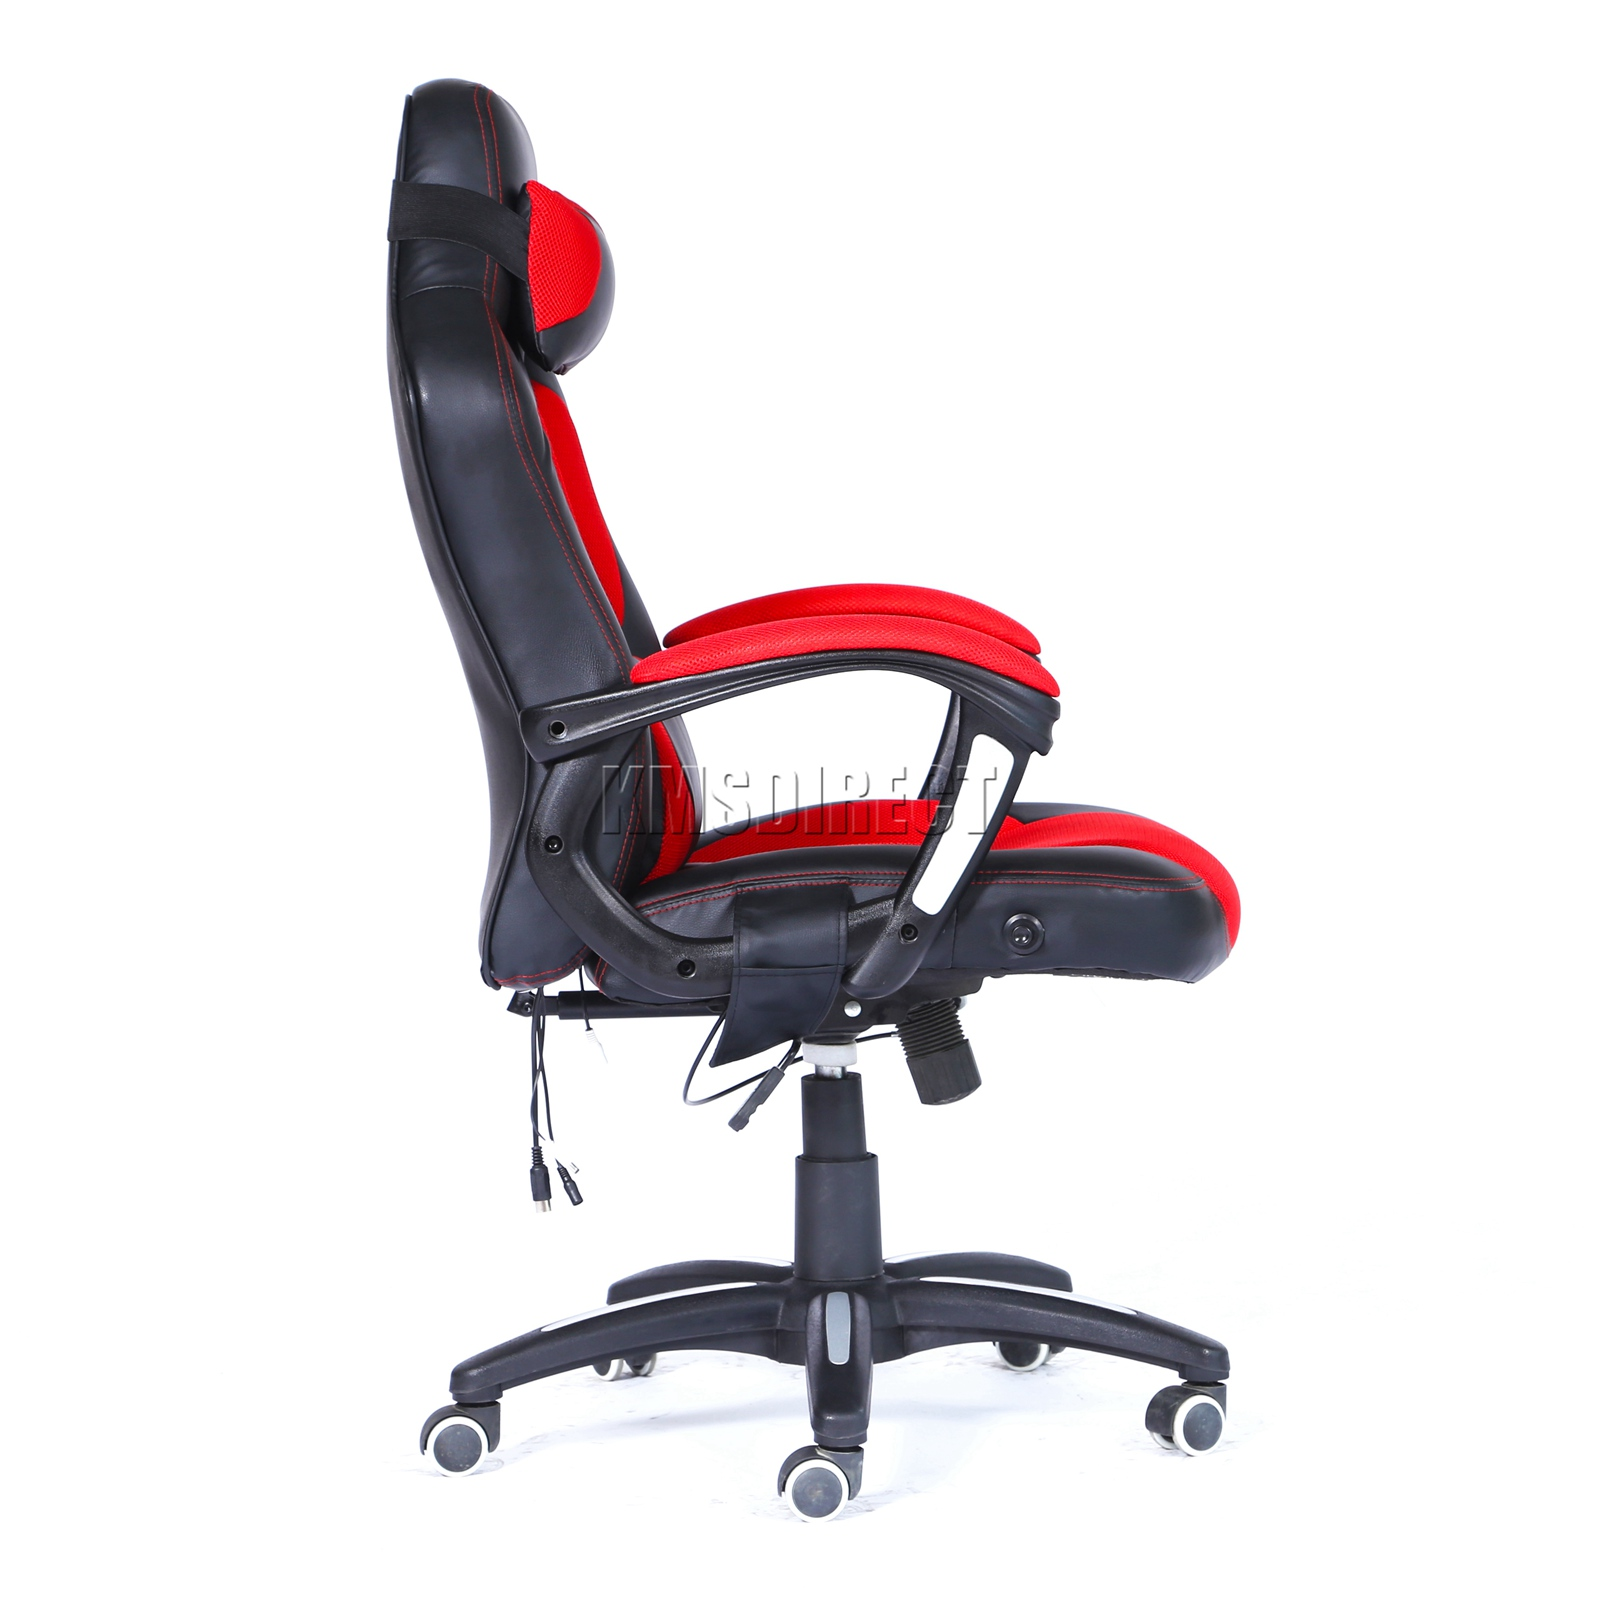 WestWood-Heated-Massage-Office-Chair-Gaming-amp-Computer-Recliner-Swivel-MC09 thumbnail 34